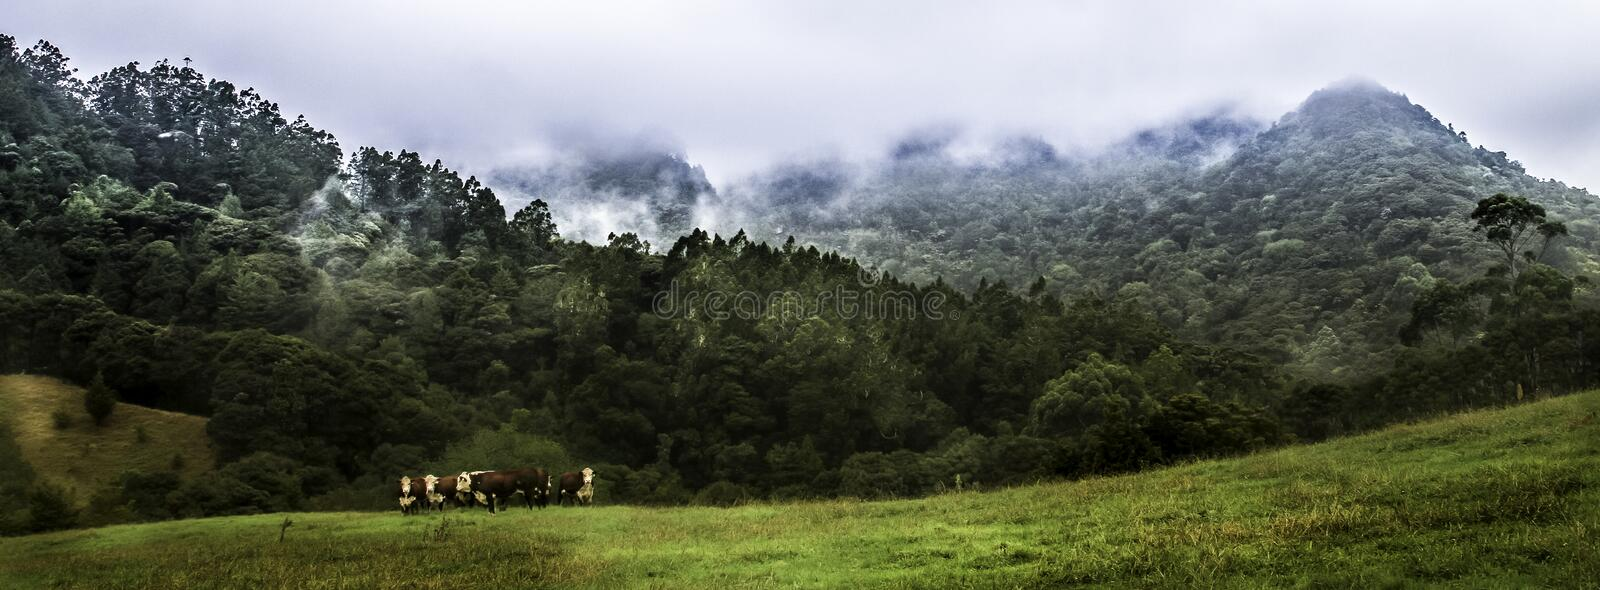 Hereford cattle with wild scenic background. Misty. wild forest background, hereford, cattle, nature, farming, agriculture, meadow, pasture, rural, mammal stock photos